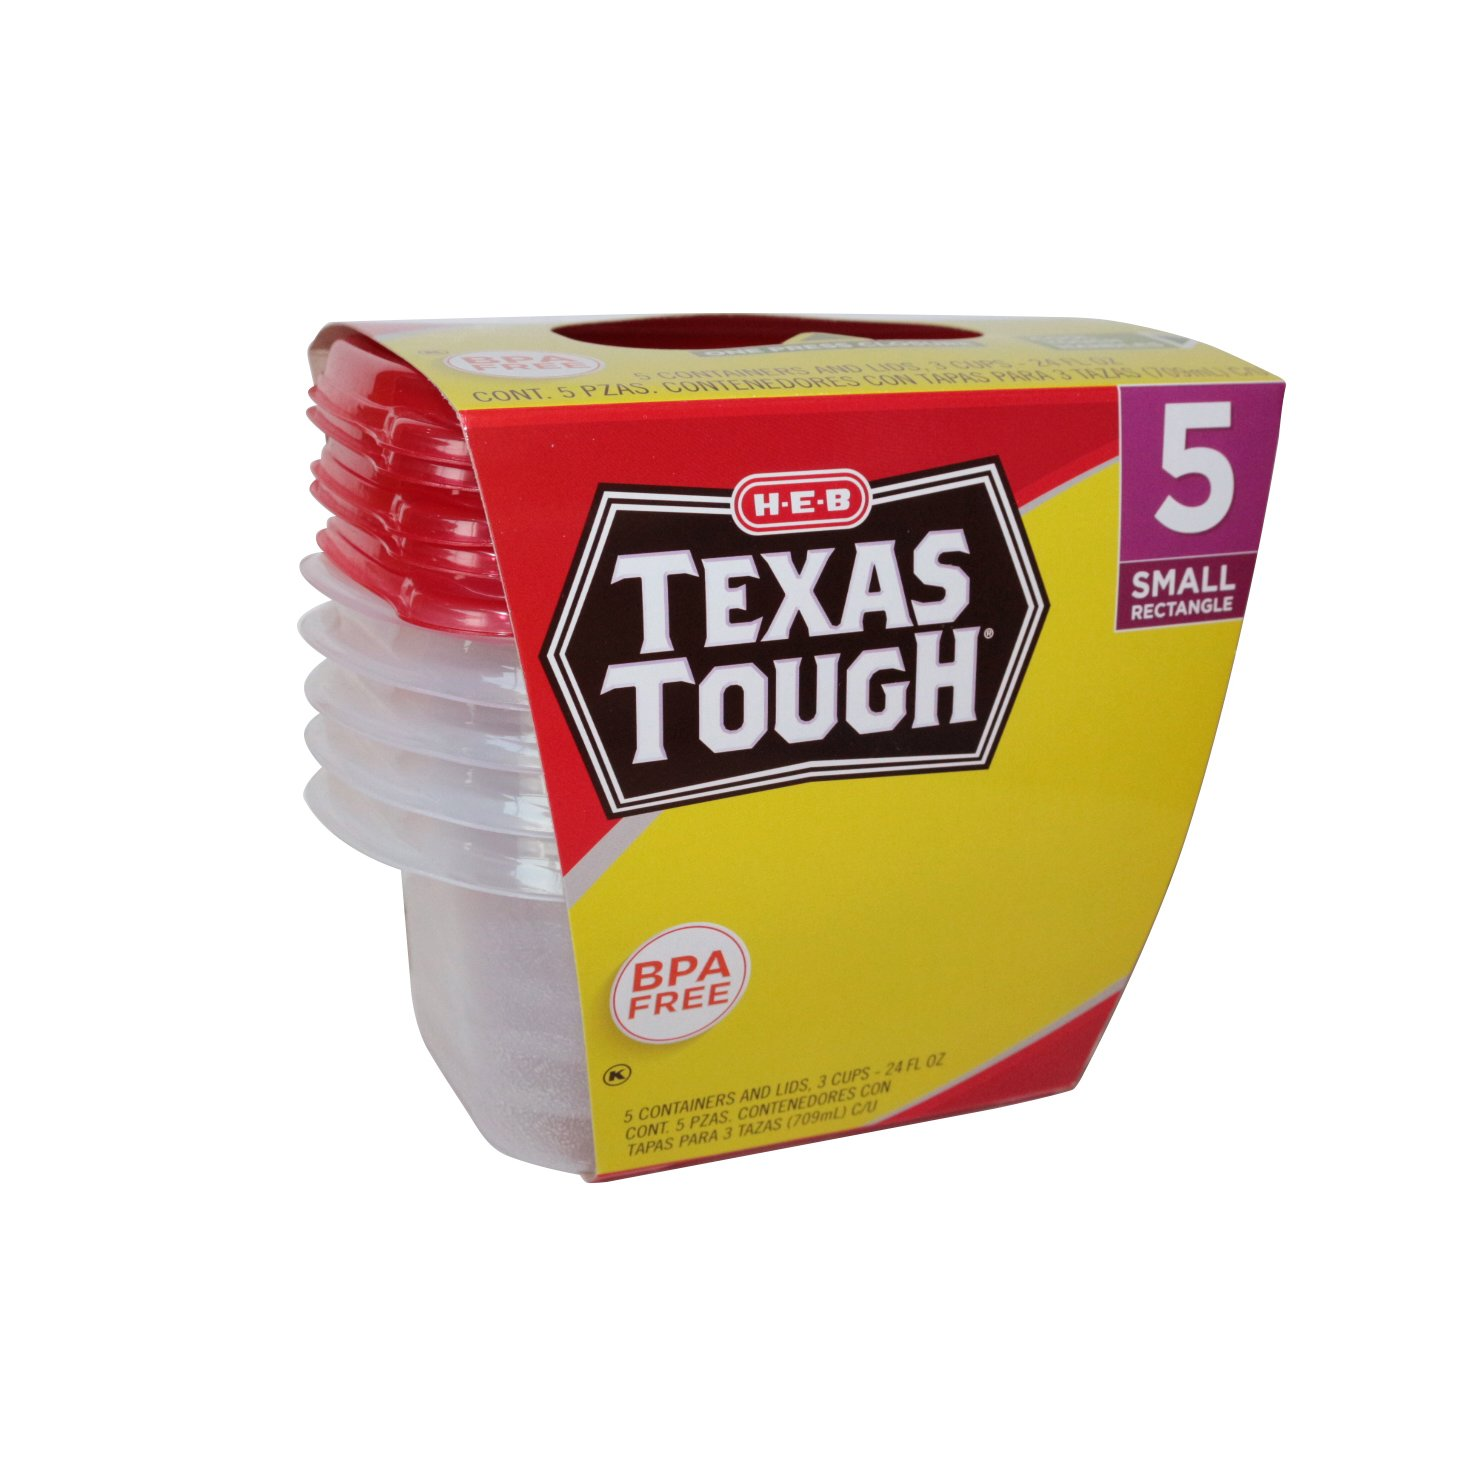 h u2011e u2011b texas tough small rectangle 24oz food storage containers